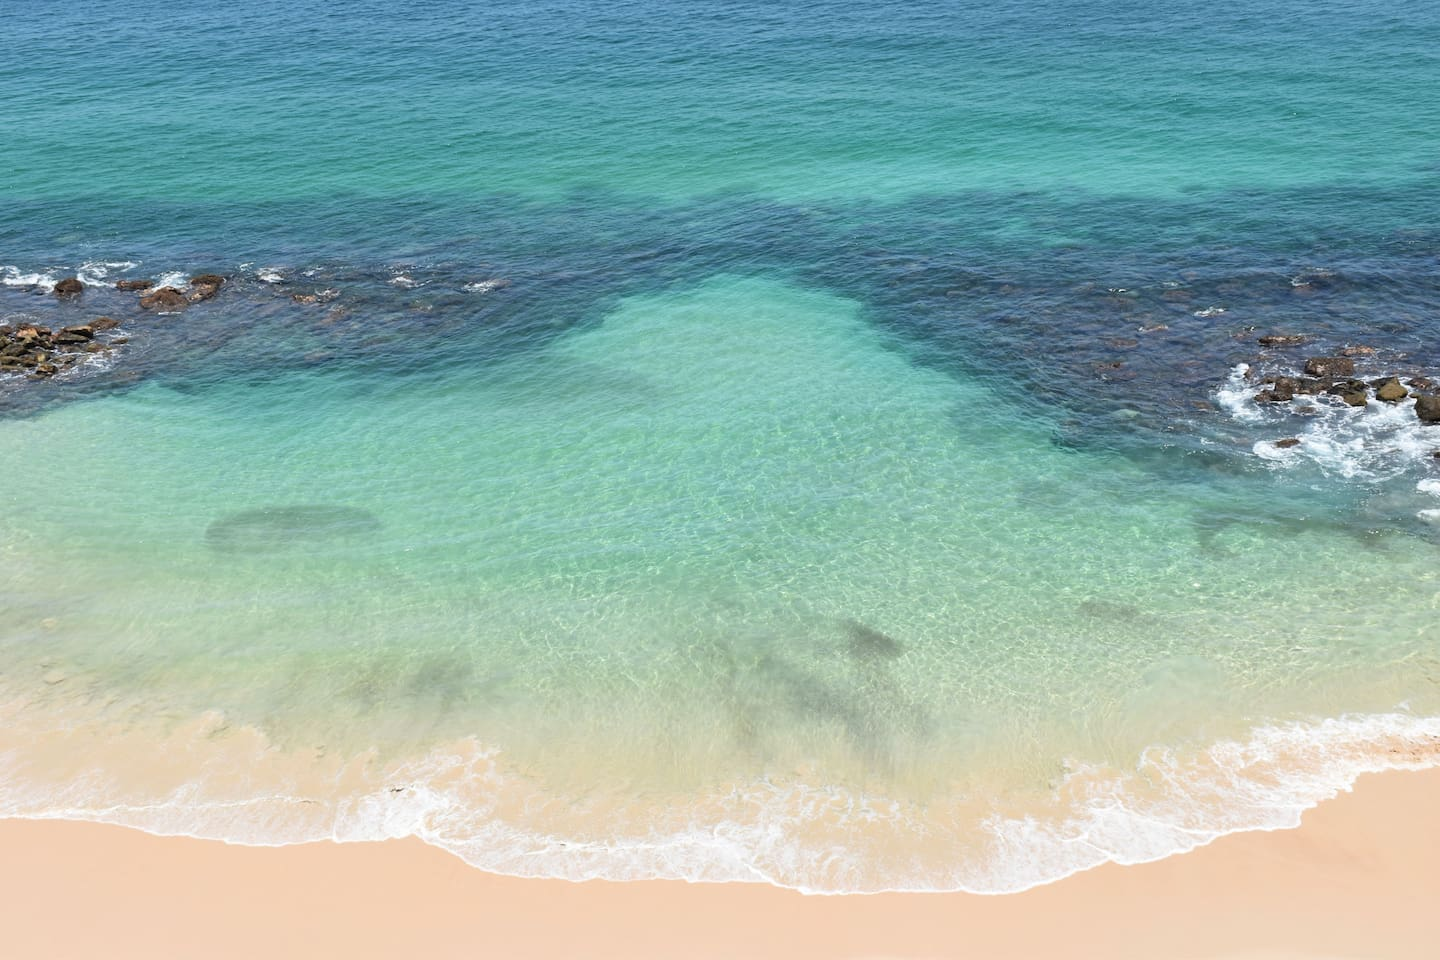 Crystal water, great for snorkeling!